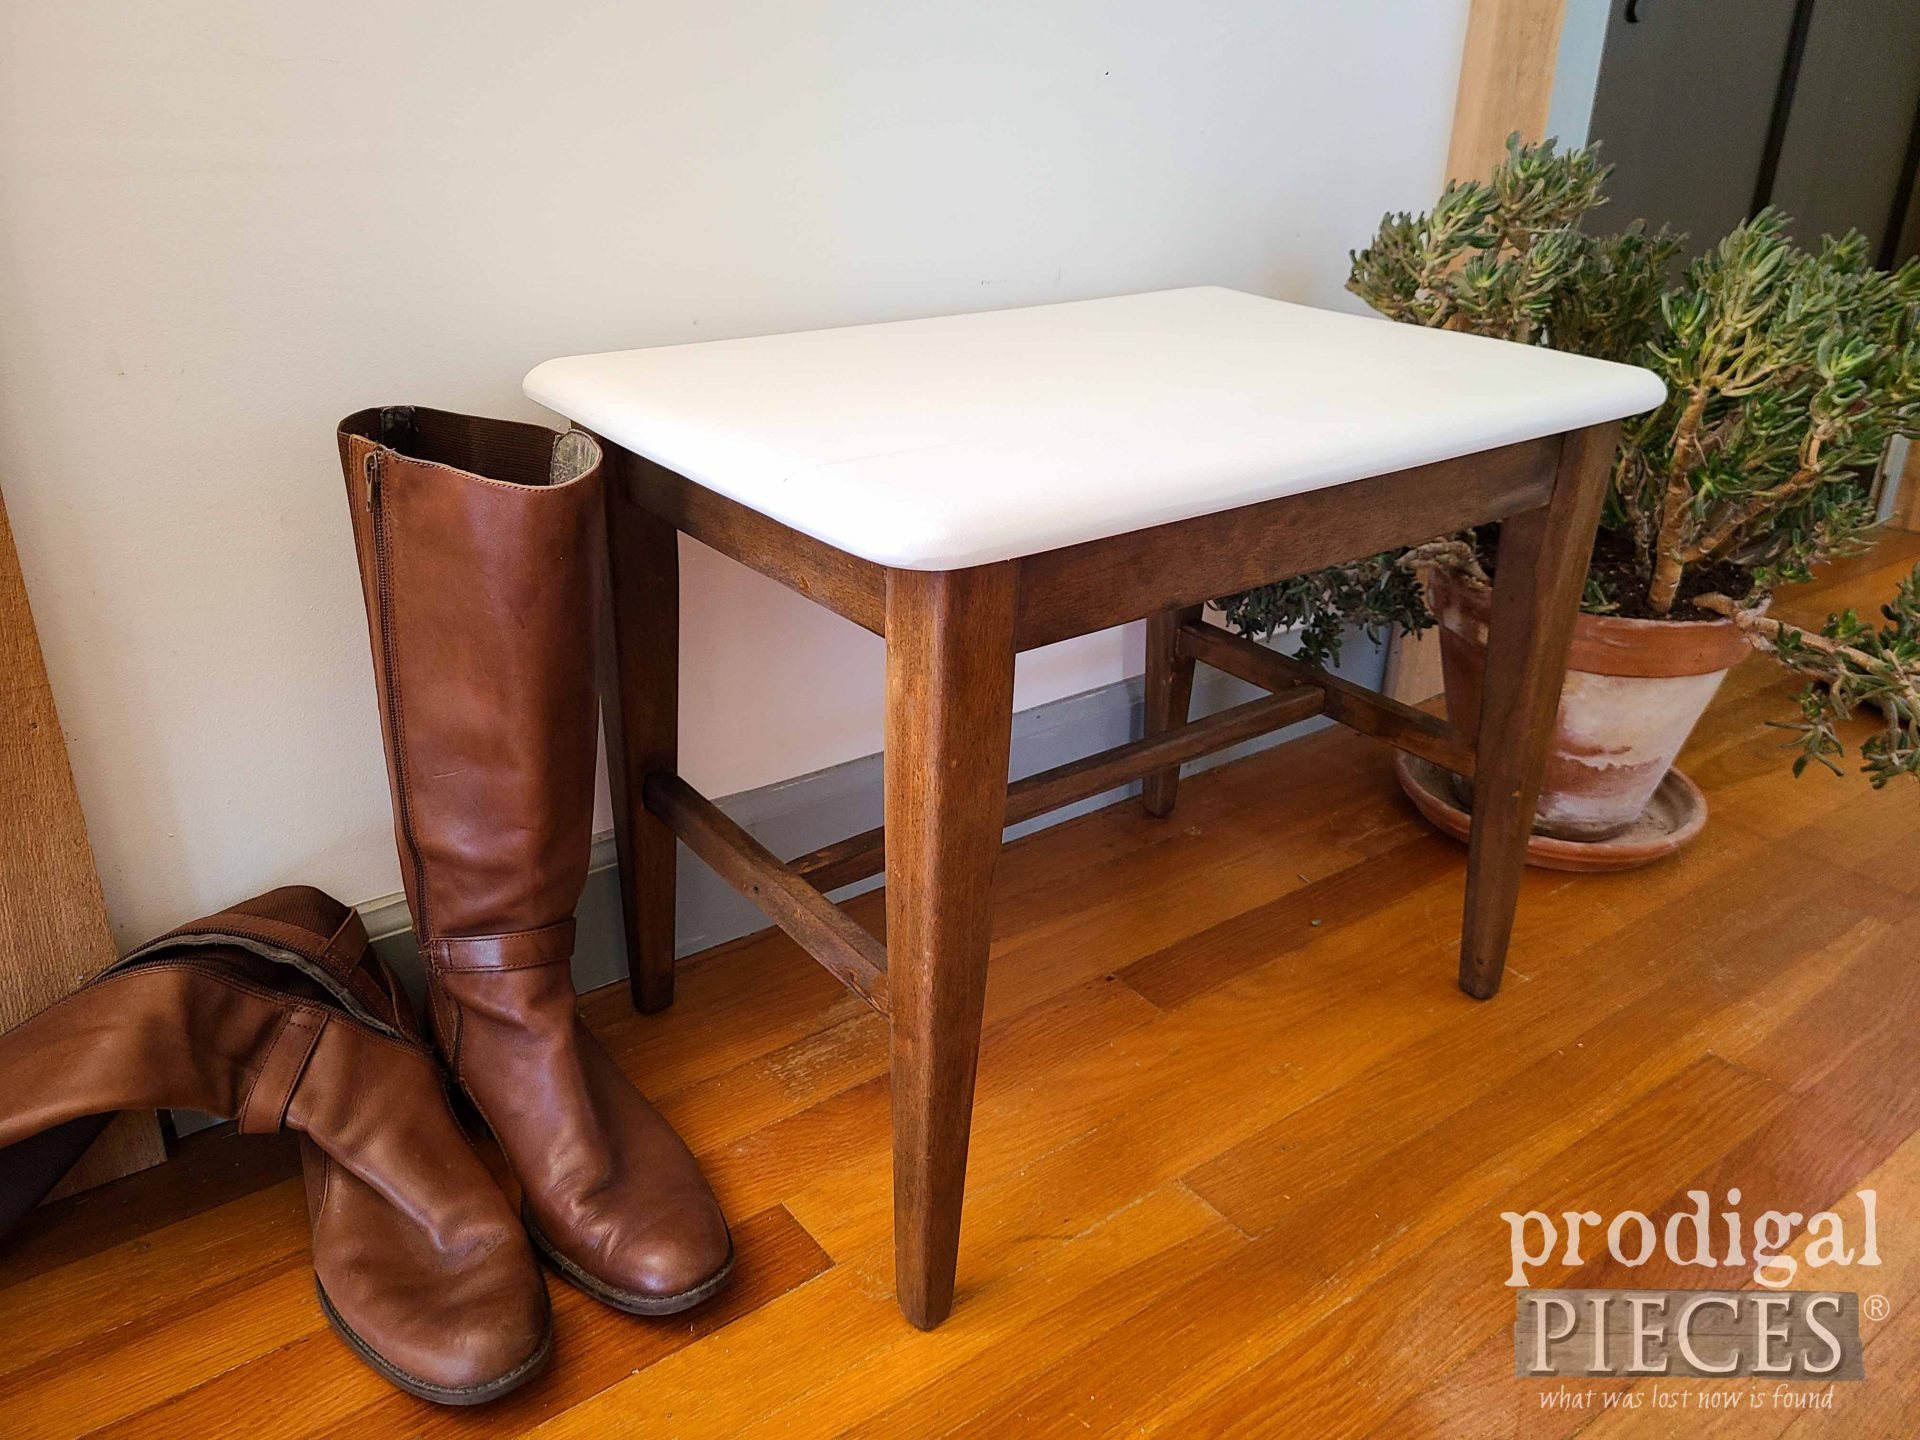 White & Stain Mid Century Modern Bench Makeover by Larissa of Prodigal Pieces | prodigalpieces.com #prodigalpieces #furniture #vintage #midcentury